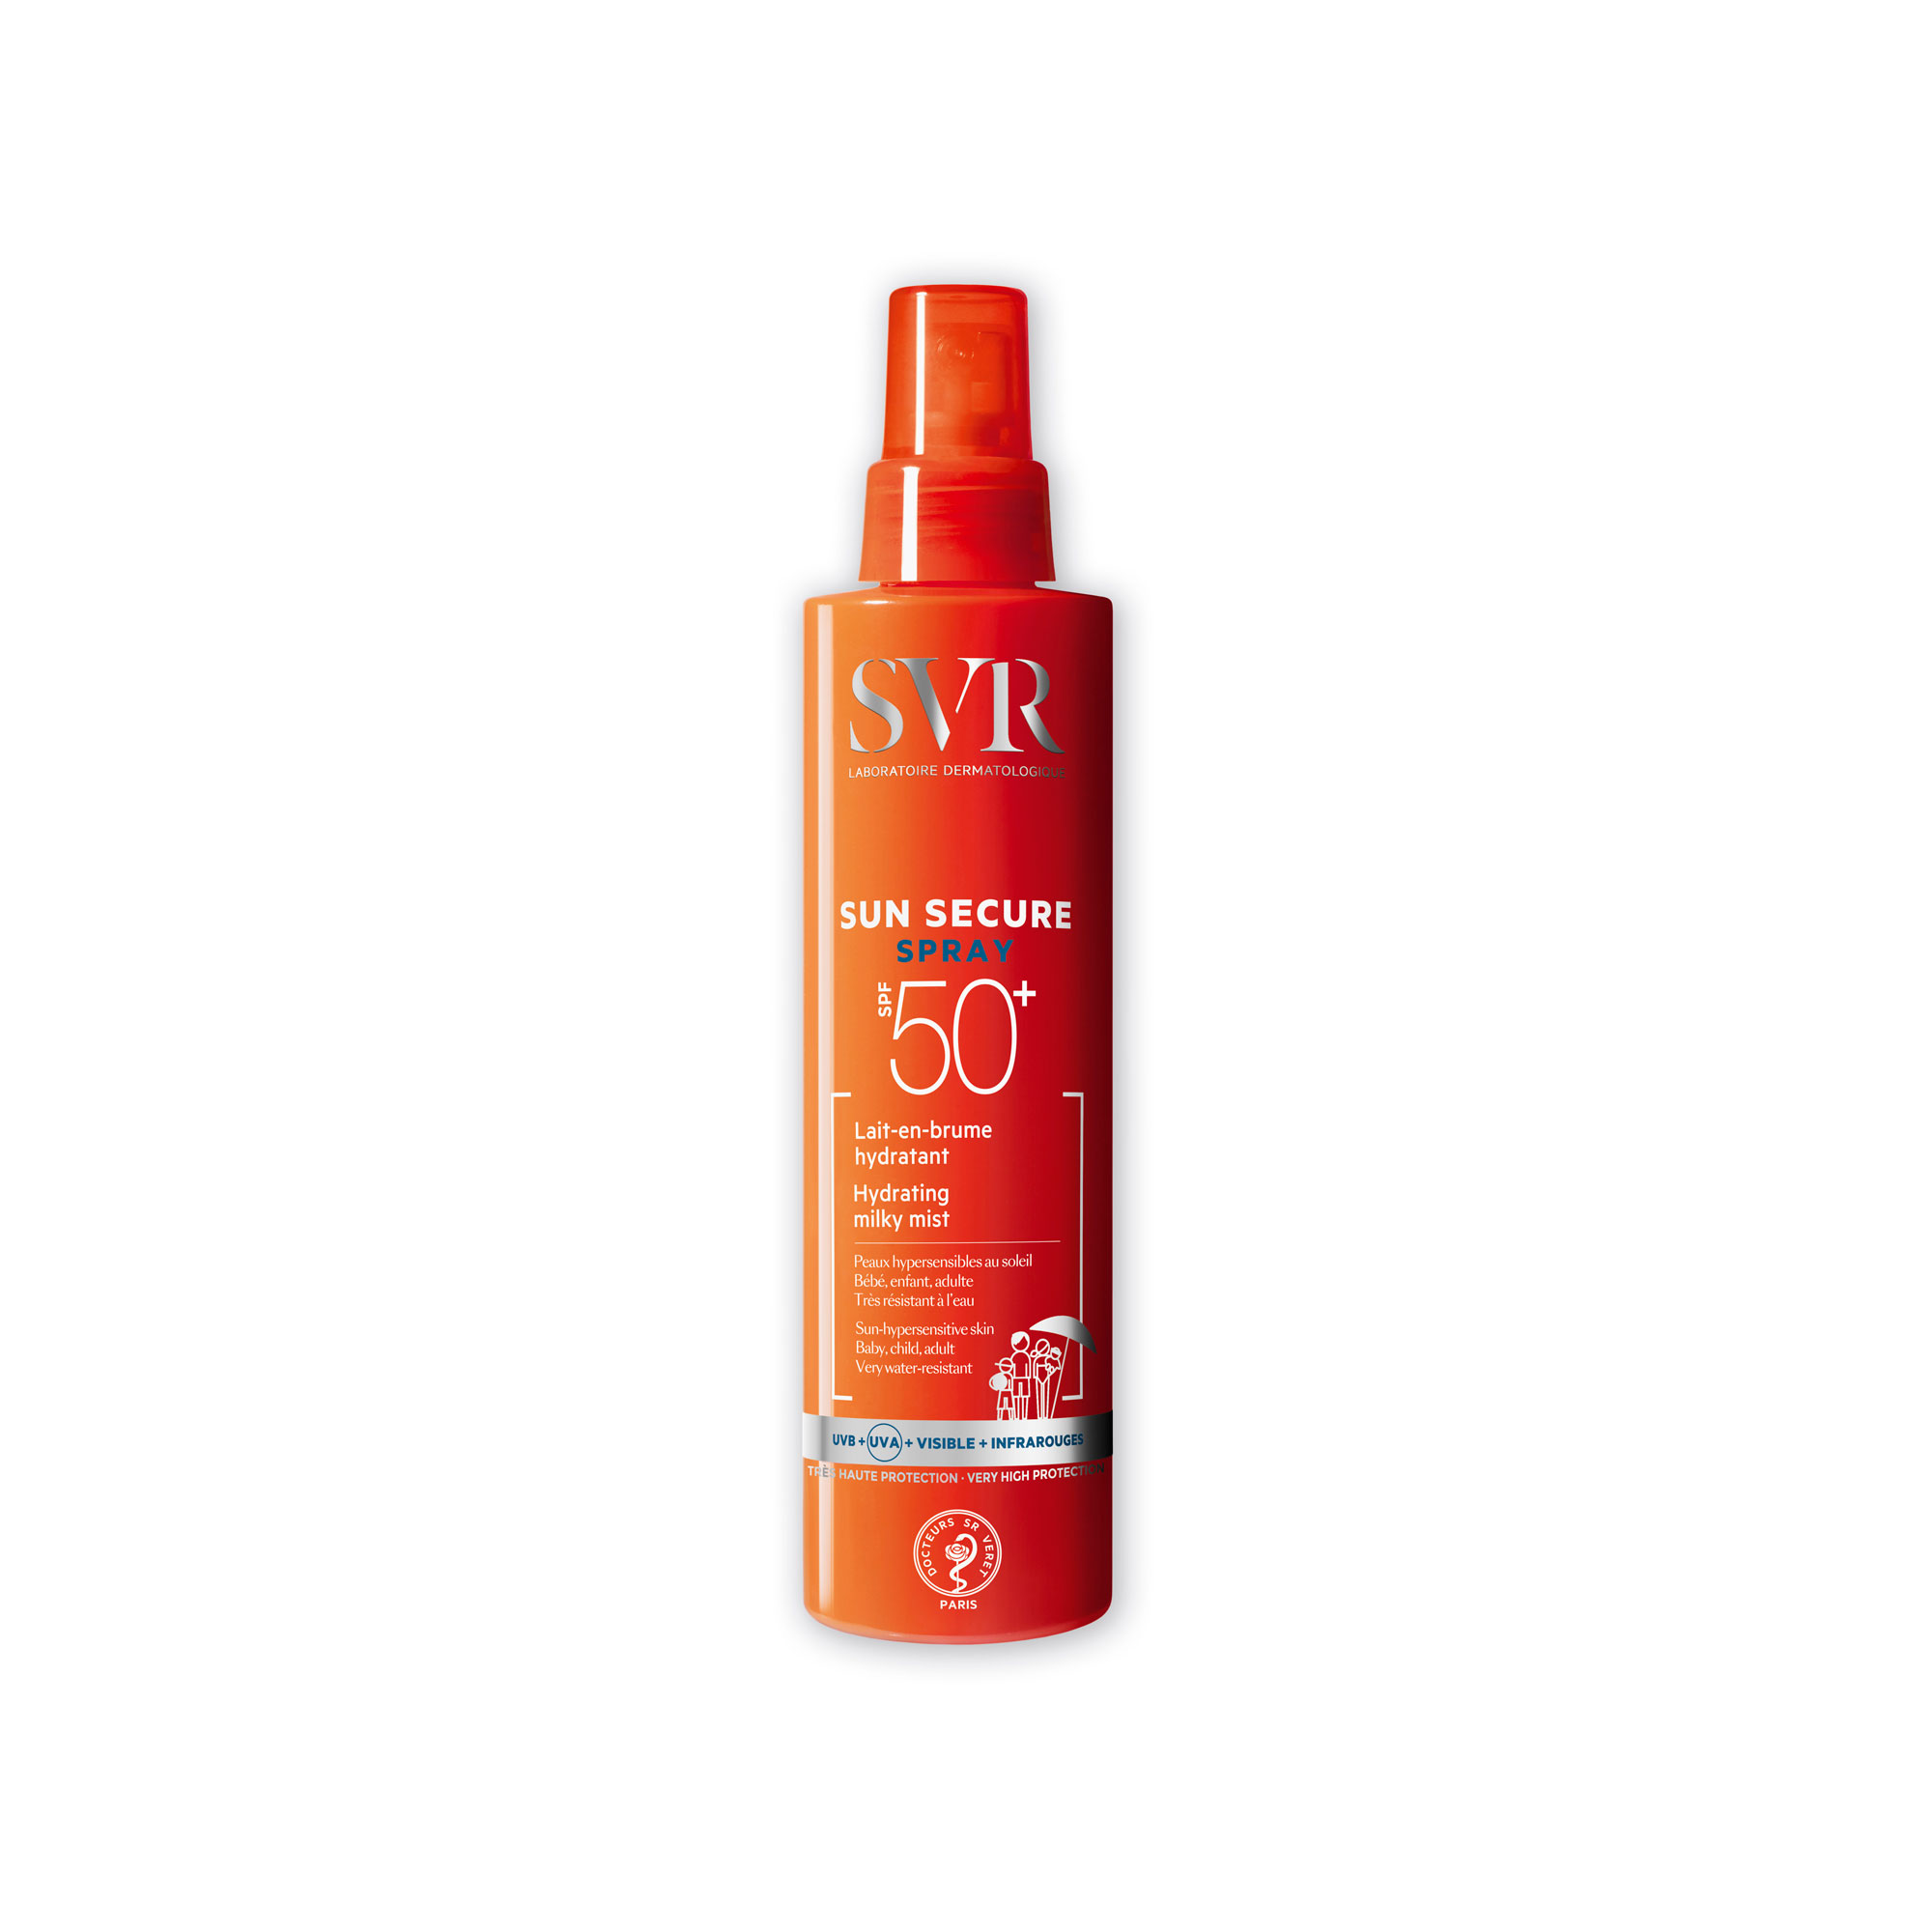 SVR SUN SECURE SPRAY SPF50+ 200ML